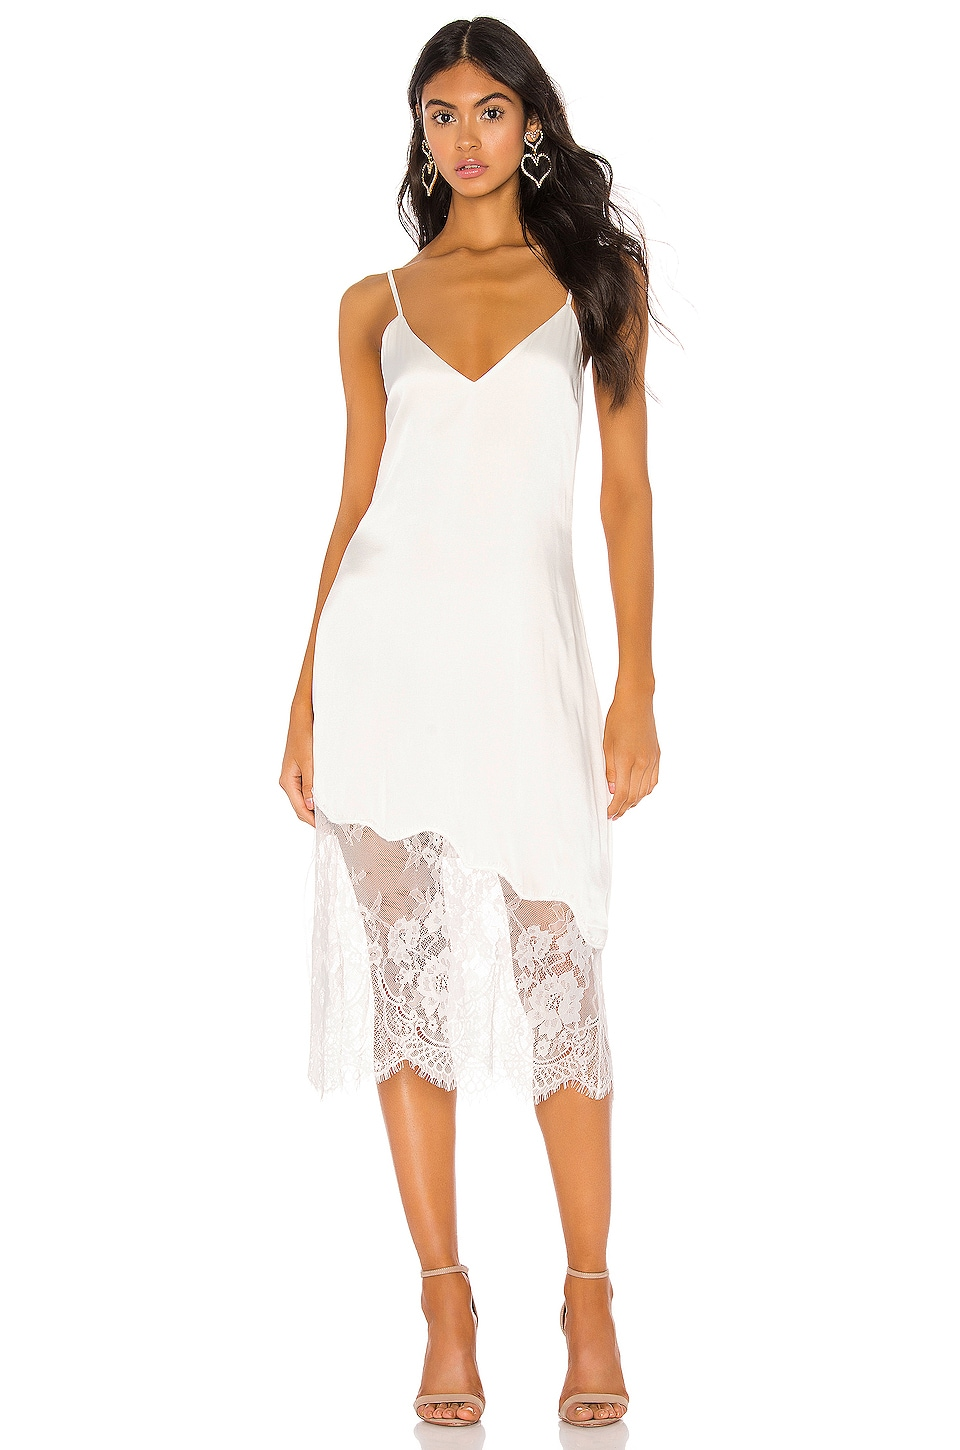 CAMI NYC The Selena Dress in White